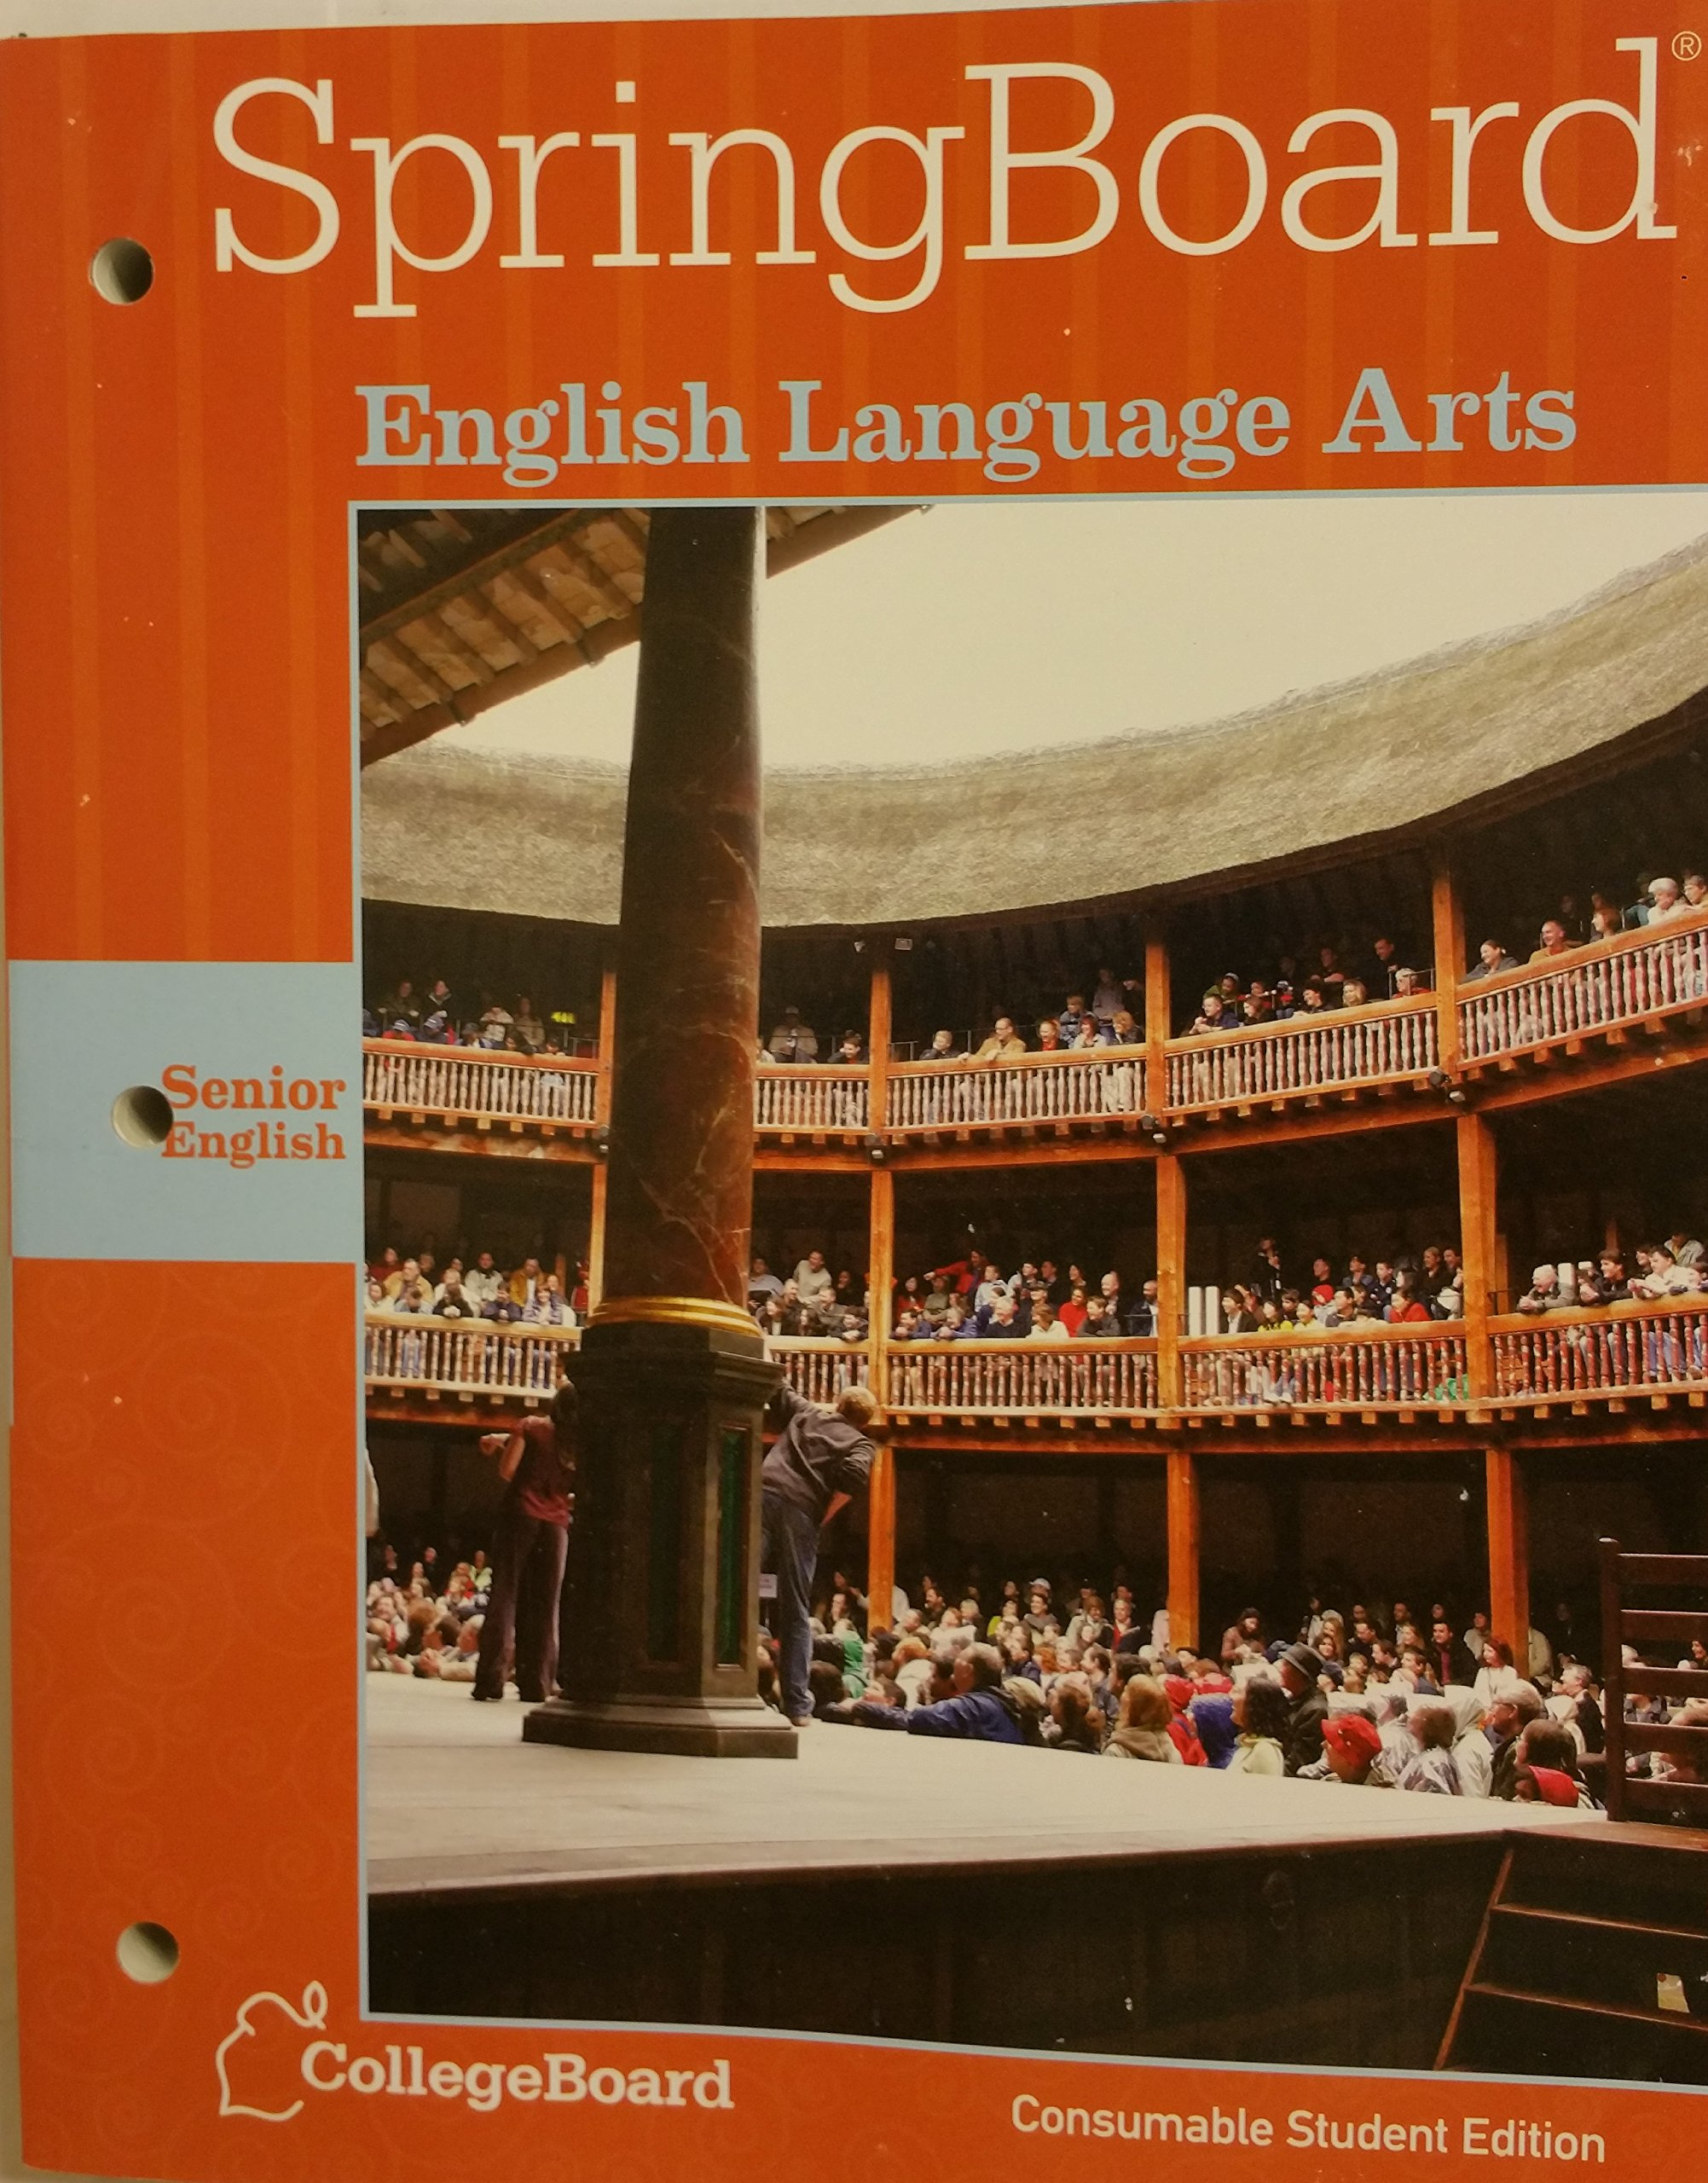 Springboard english language arts senior english grade 12 consumable springboard english language arts senior english grade 12 consumable student edition 2014 collegeboard english 9781457302244 amazon books fandeluxe Choice Image